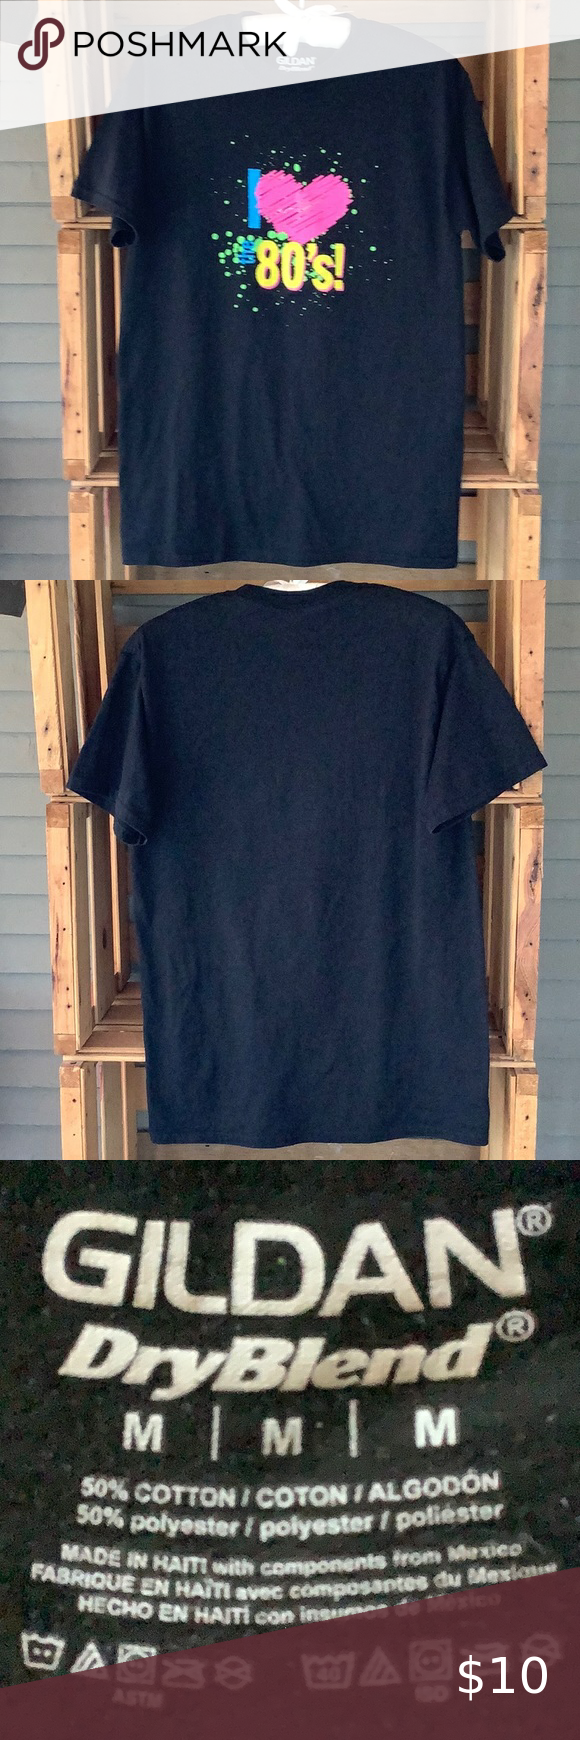 Check out this listing I just found on Poshmark: I Love the 80's T-Shirt M. #shopmycloset #poshmark #shopping #style #pinitforlater #Gildan #Other